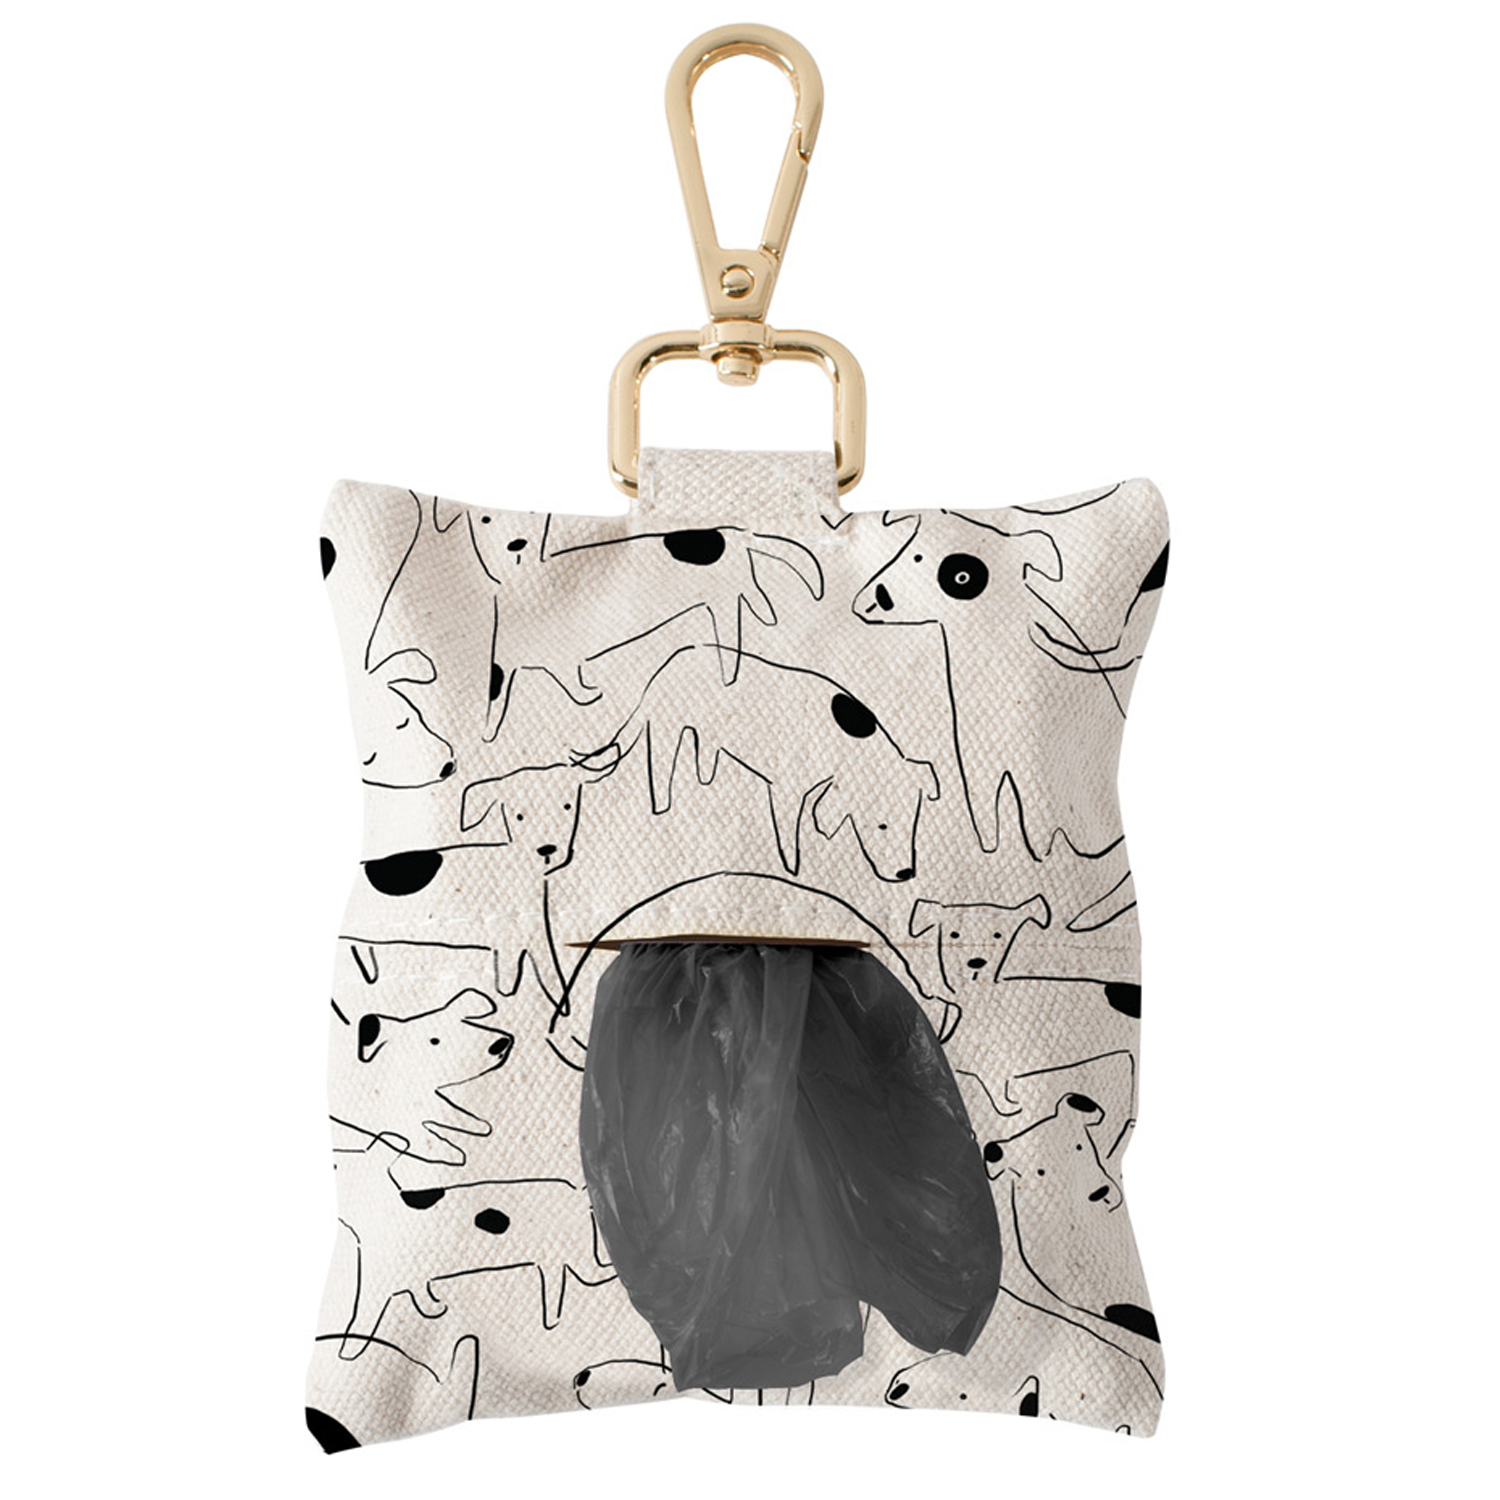 Nosy Dog Canvas Poop Bag Dispenser